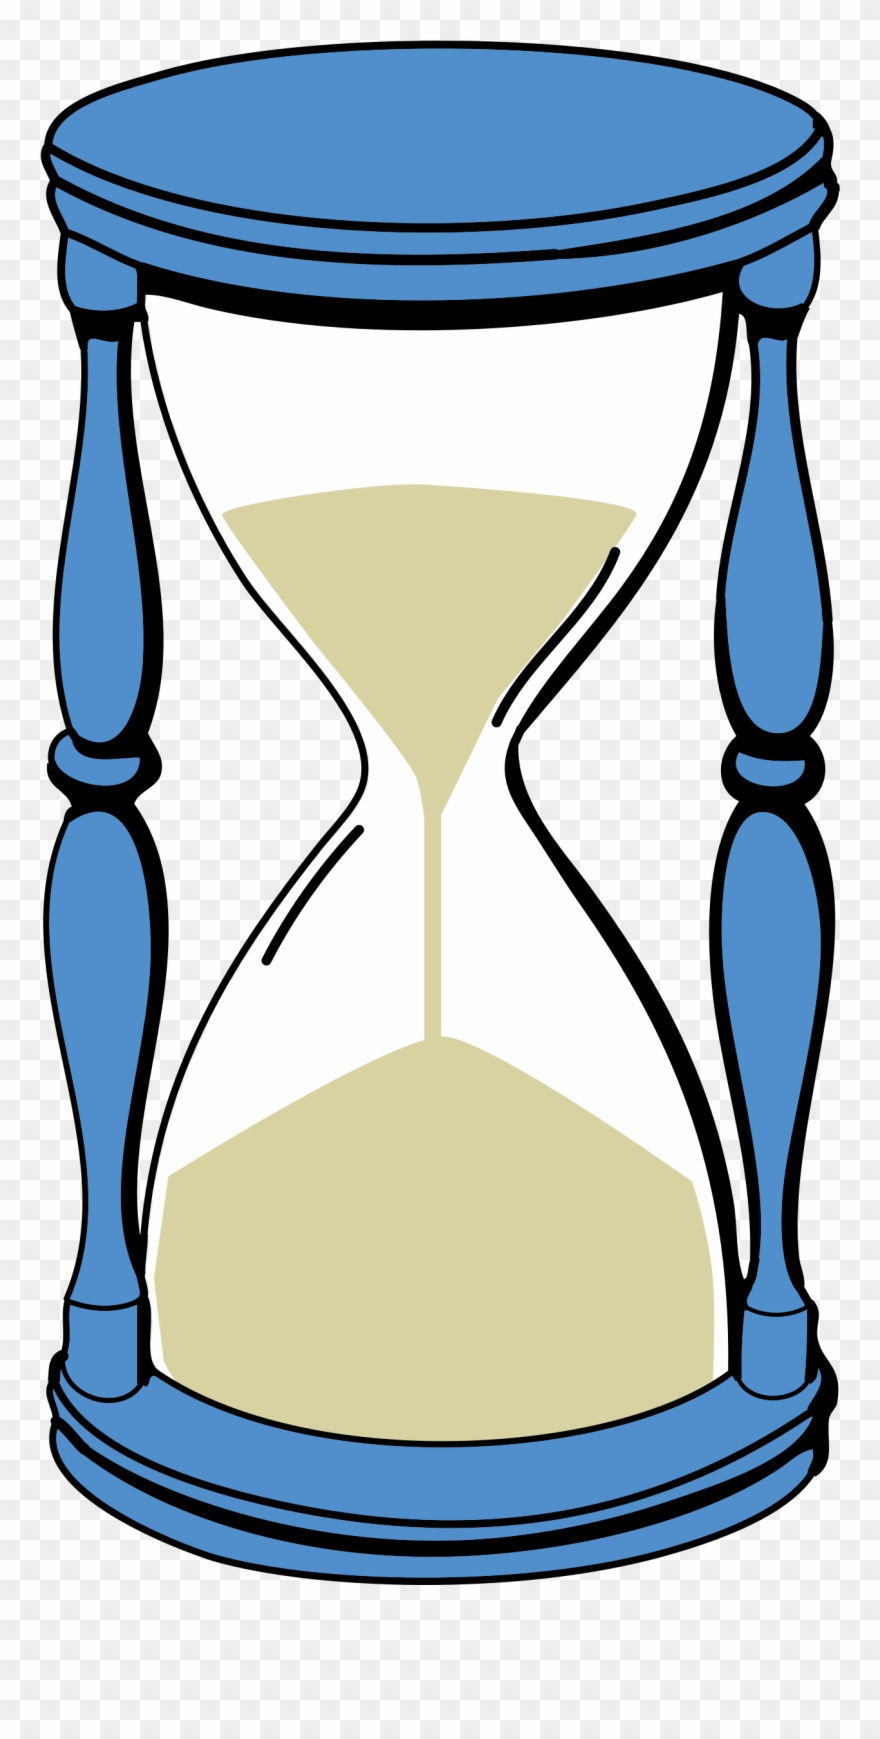 Patience clipart time. Hourglass capsule sand timer